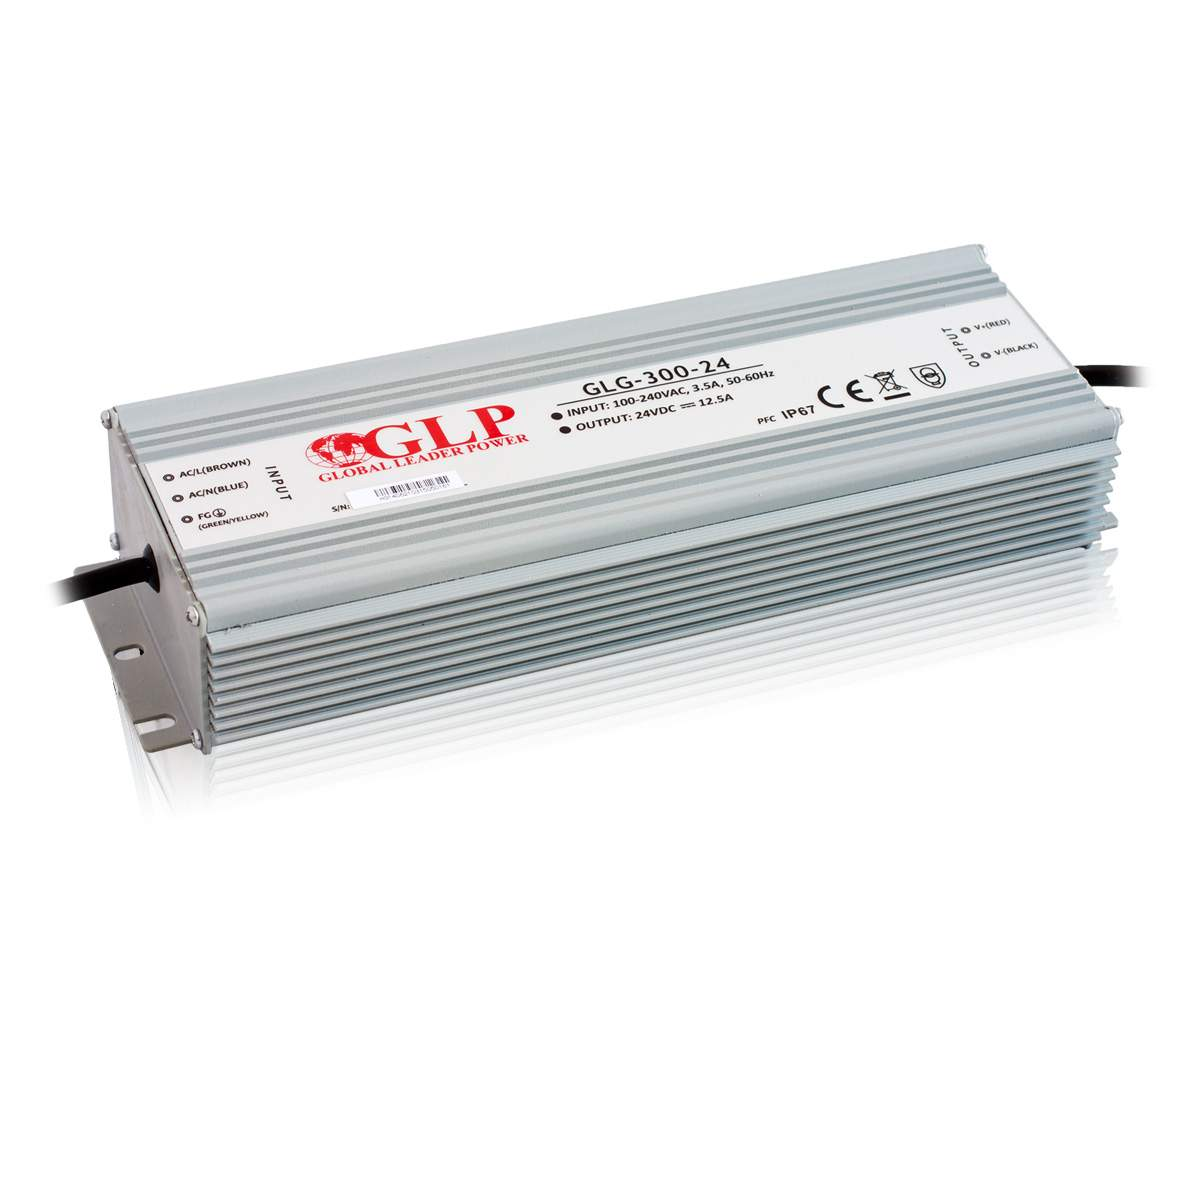 LED Toiteplokk GLP POWER 24V GLG-300-24 230V 300W IP67